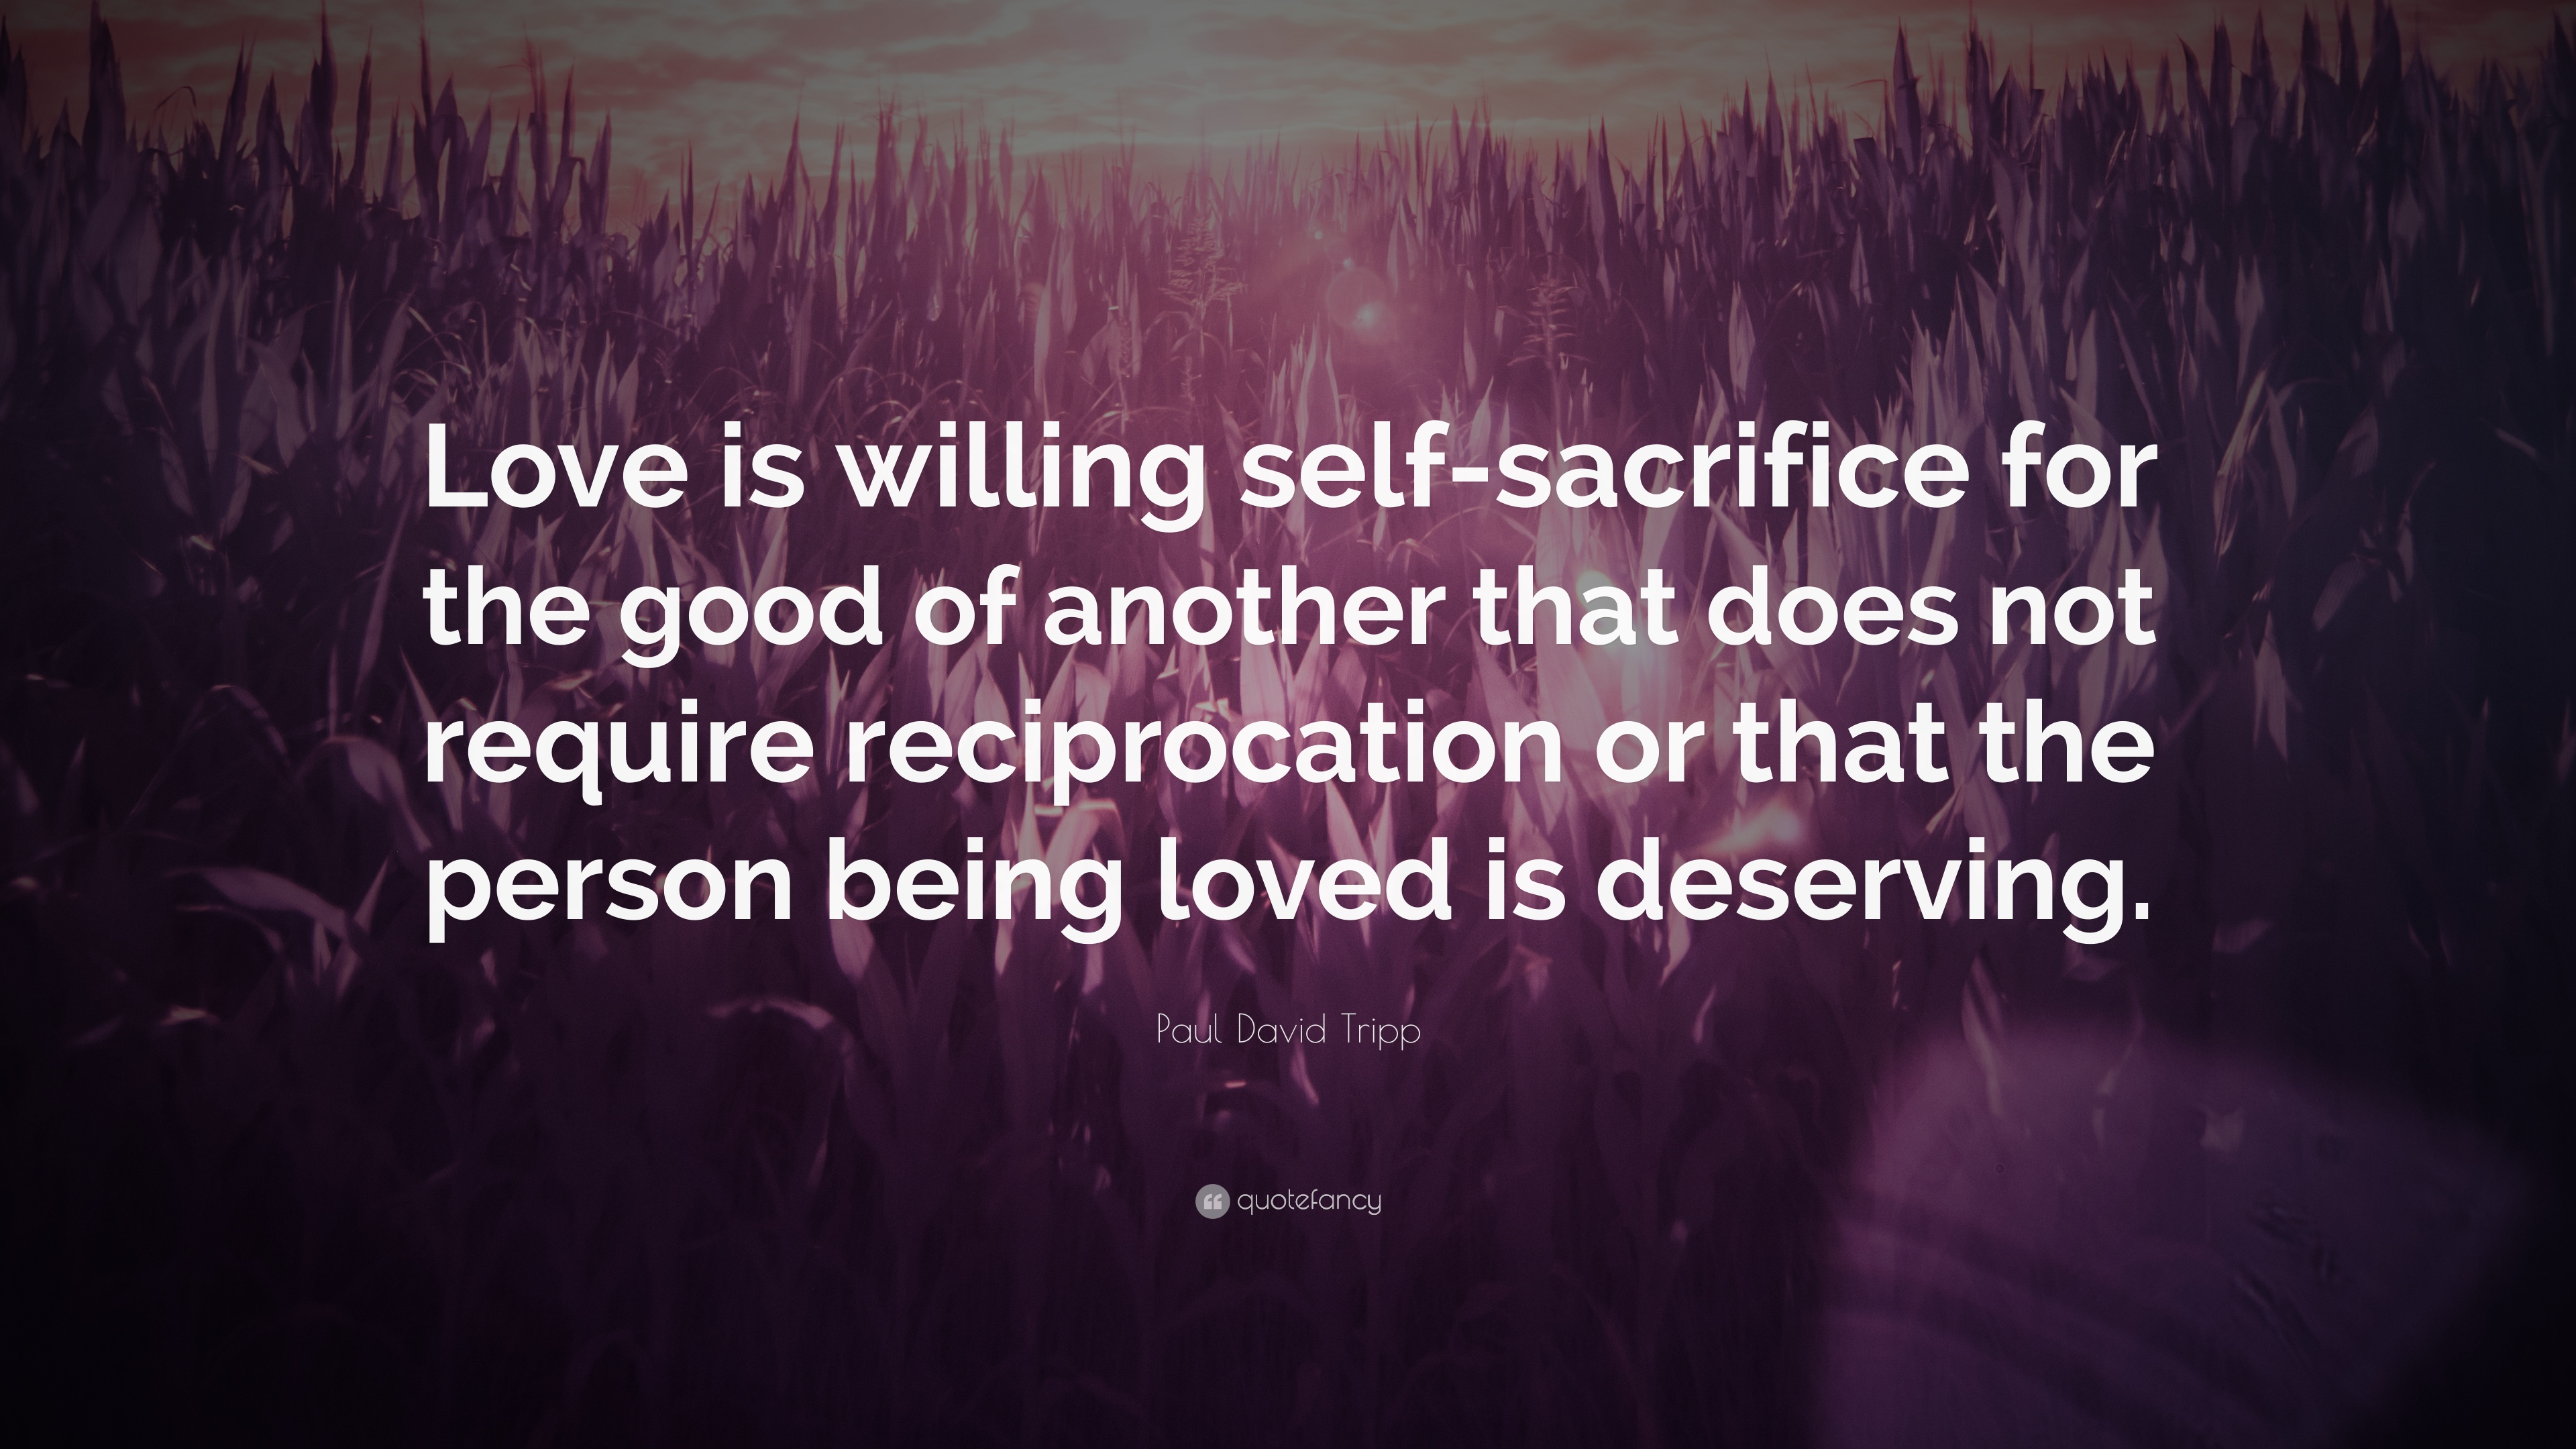 Paul david tripp quote love is willing self sacrifice for the good paul david tripp quote love is willing self sacrifice for the good of altavistaventures Images